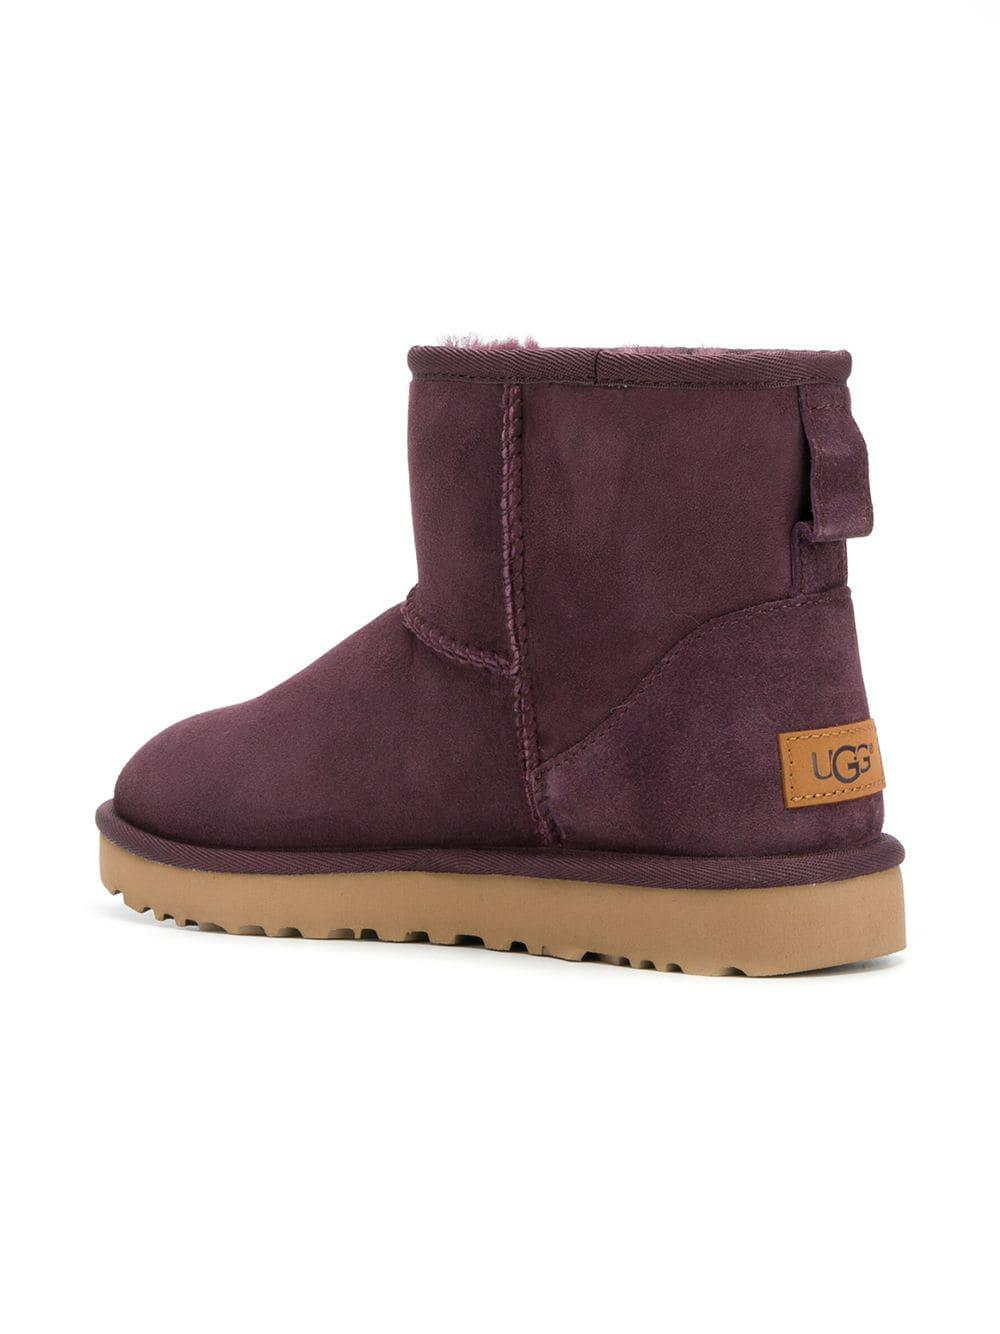 549a2f4a840 Lyst - UGG Ugg Boots in Purple